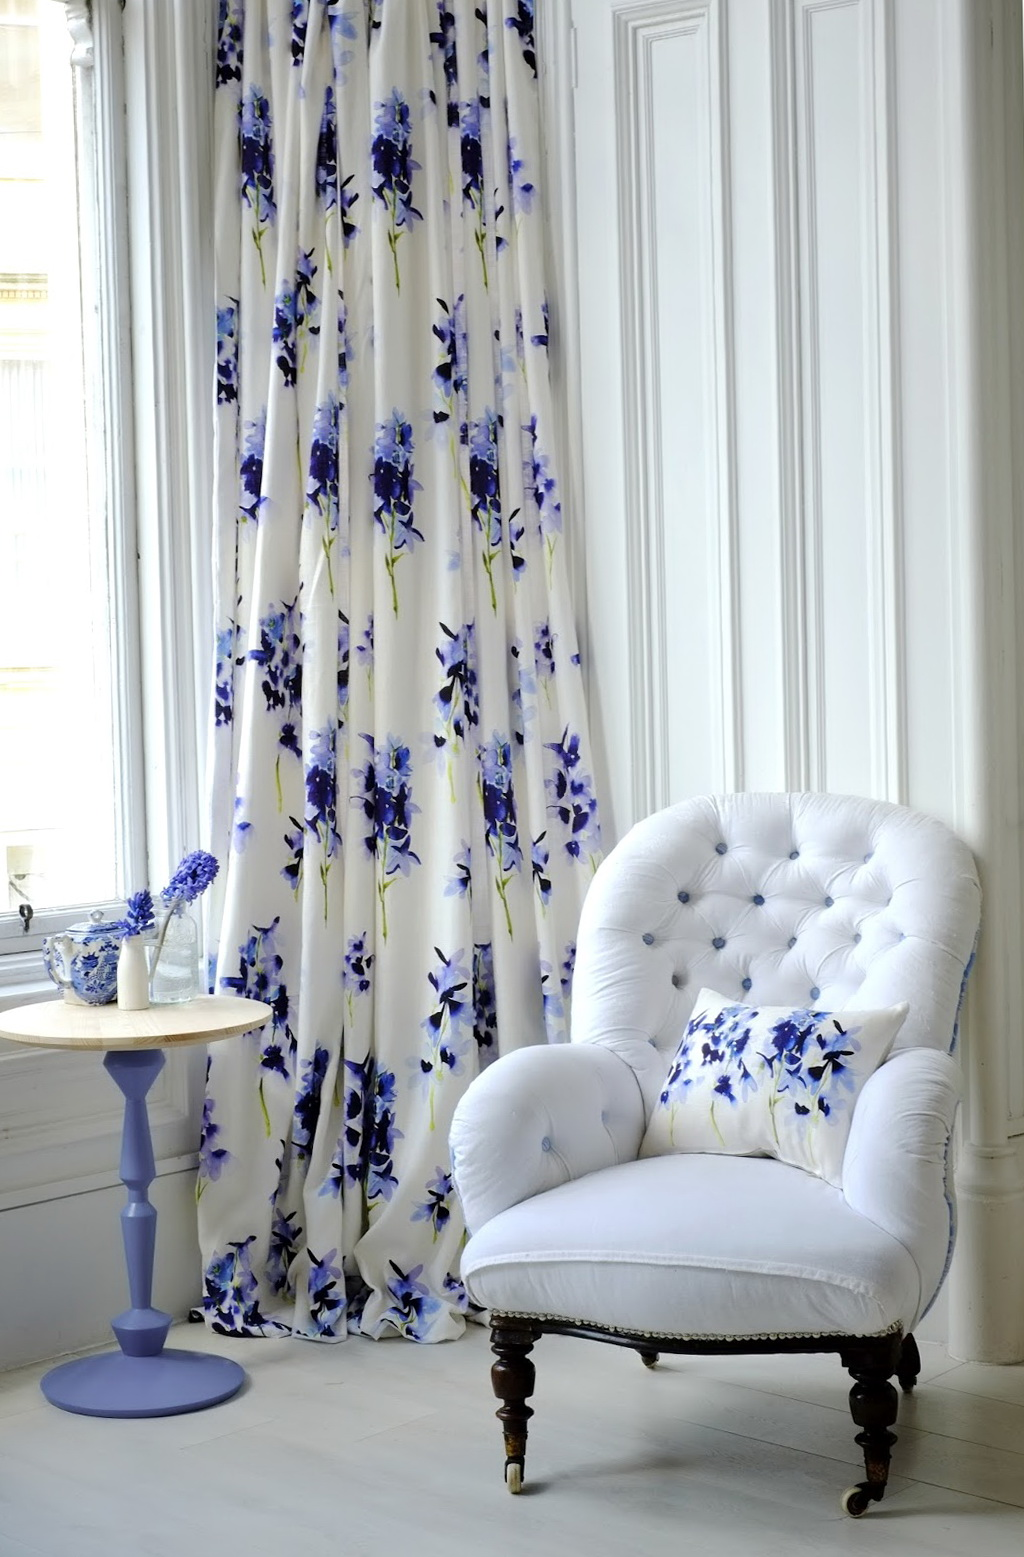 Ikea Shower Curtains White And Blue Floral Curtains | Home Design Ideas